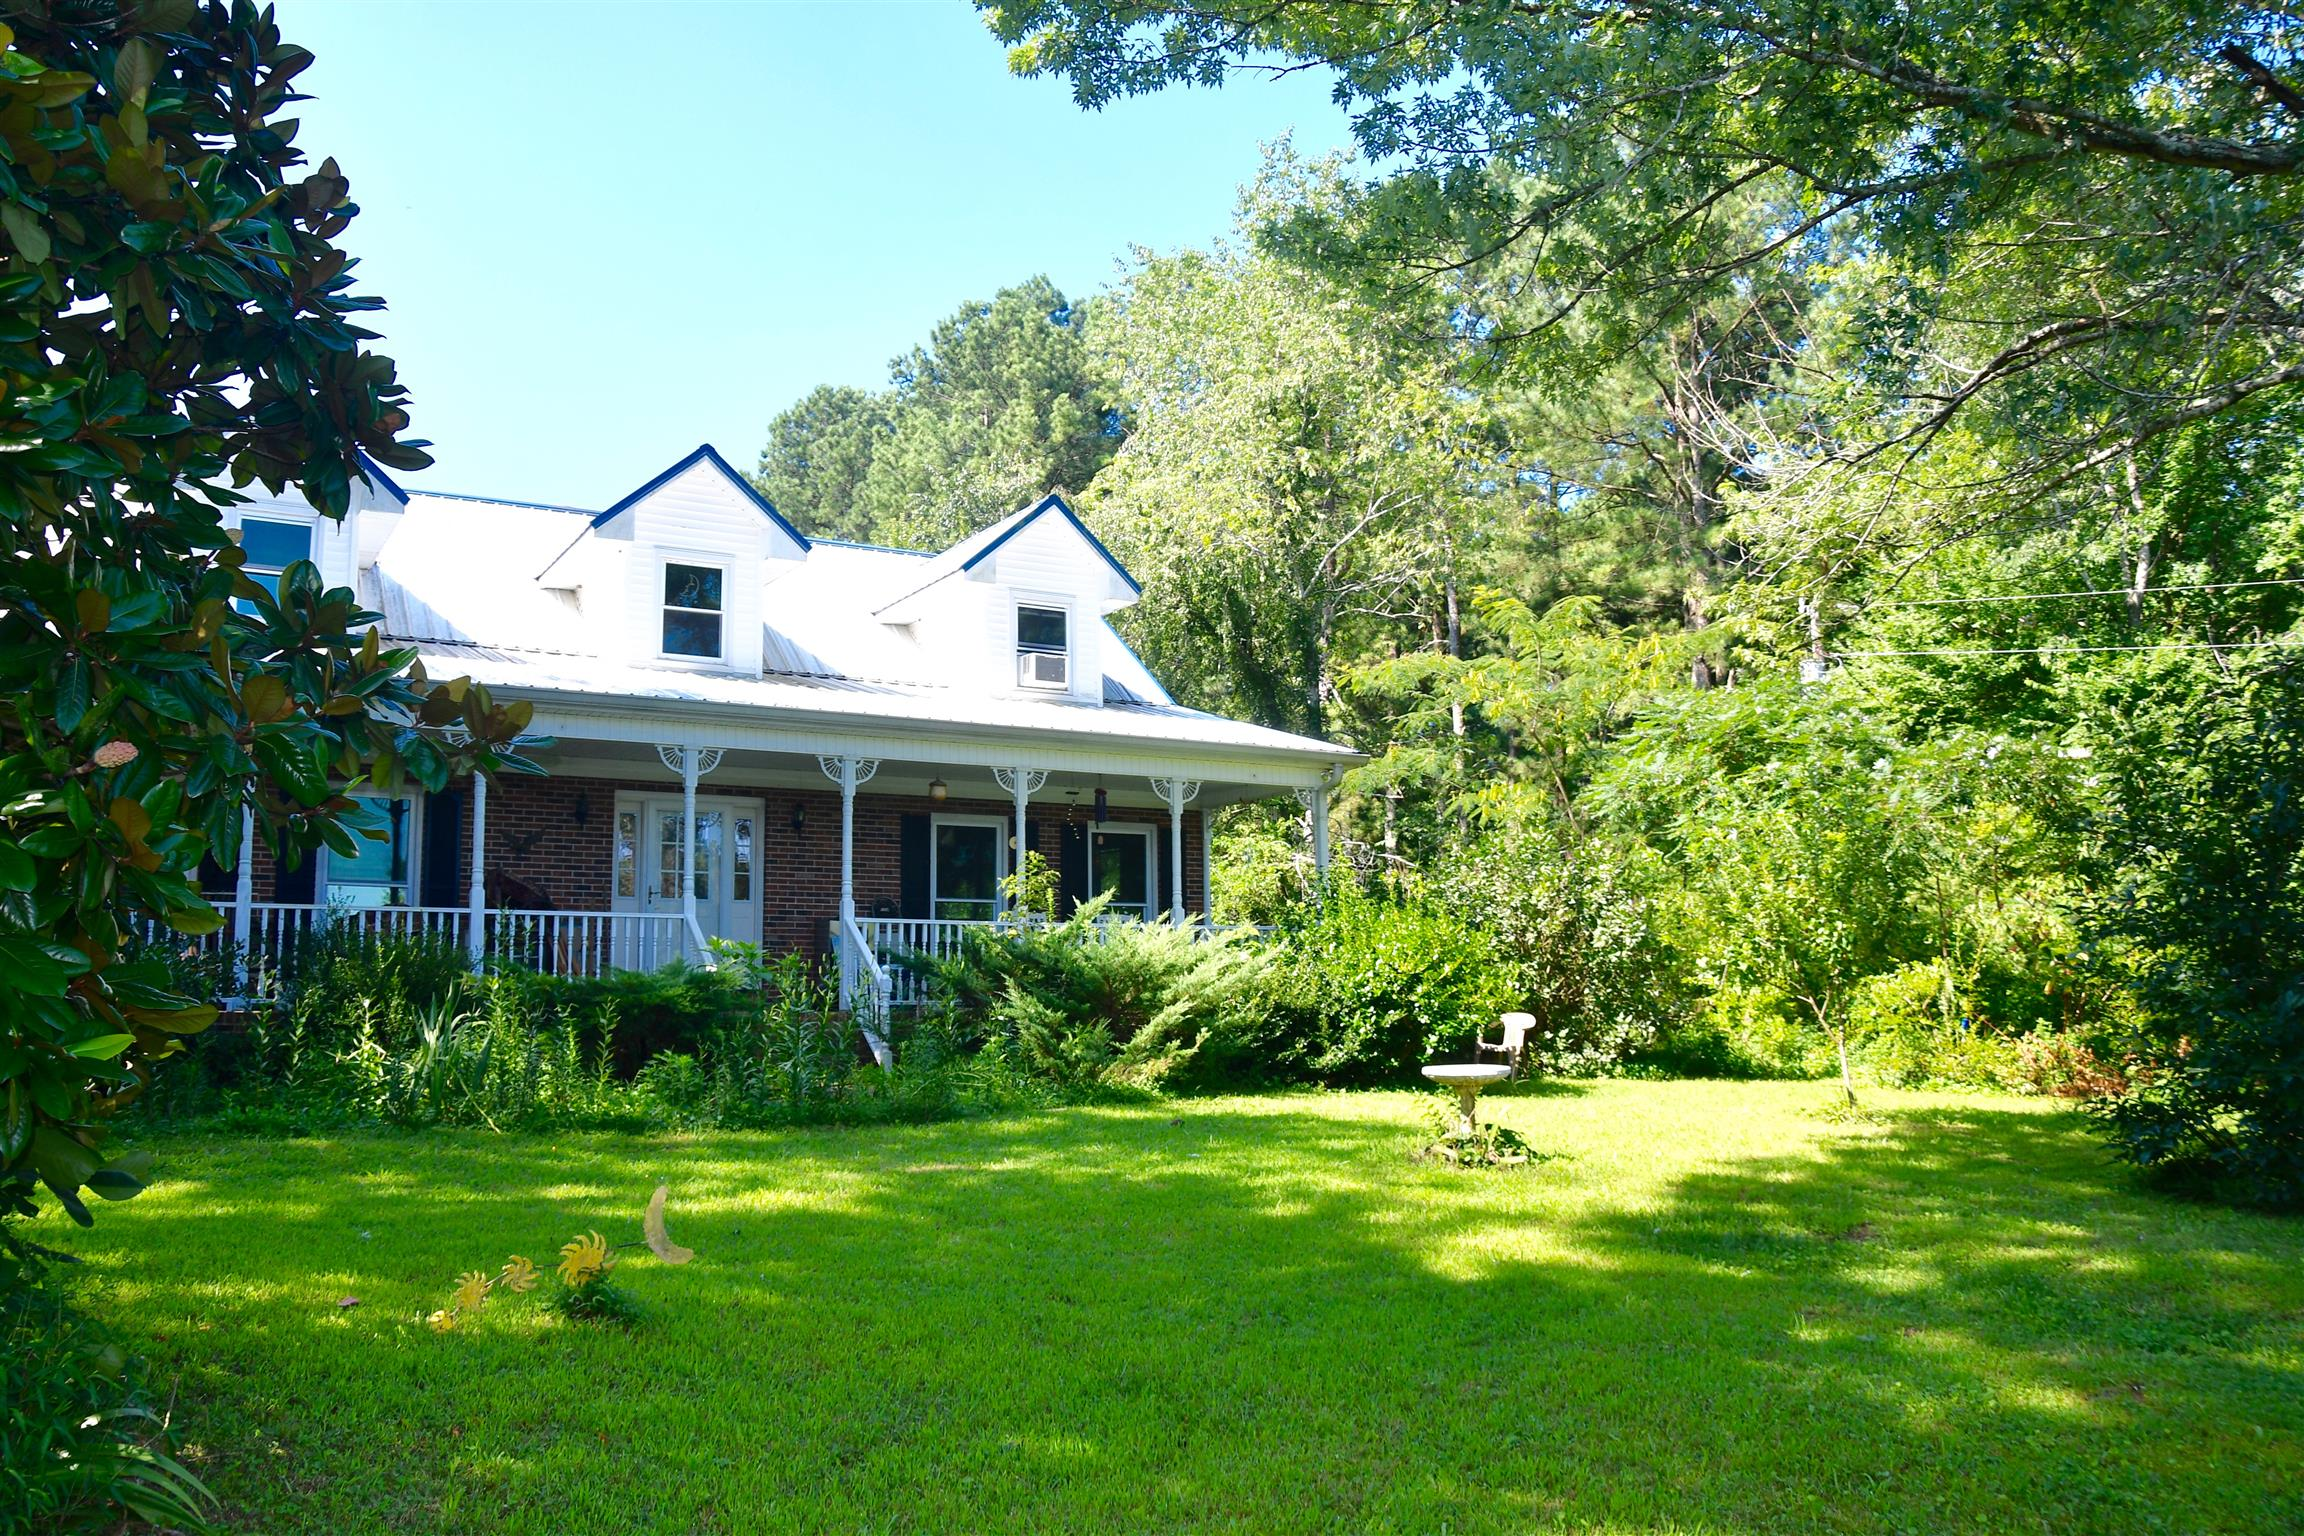 17 Three Oaks Rd, Ethridge, TN 38456 - Ethridge, TN real estate listing